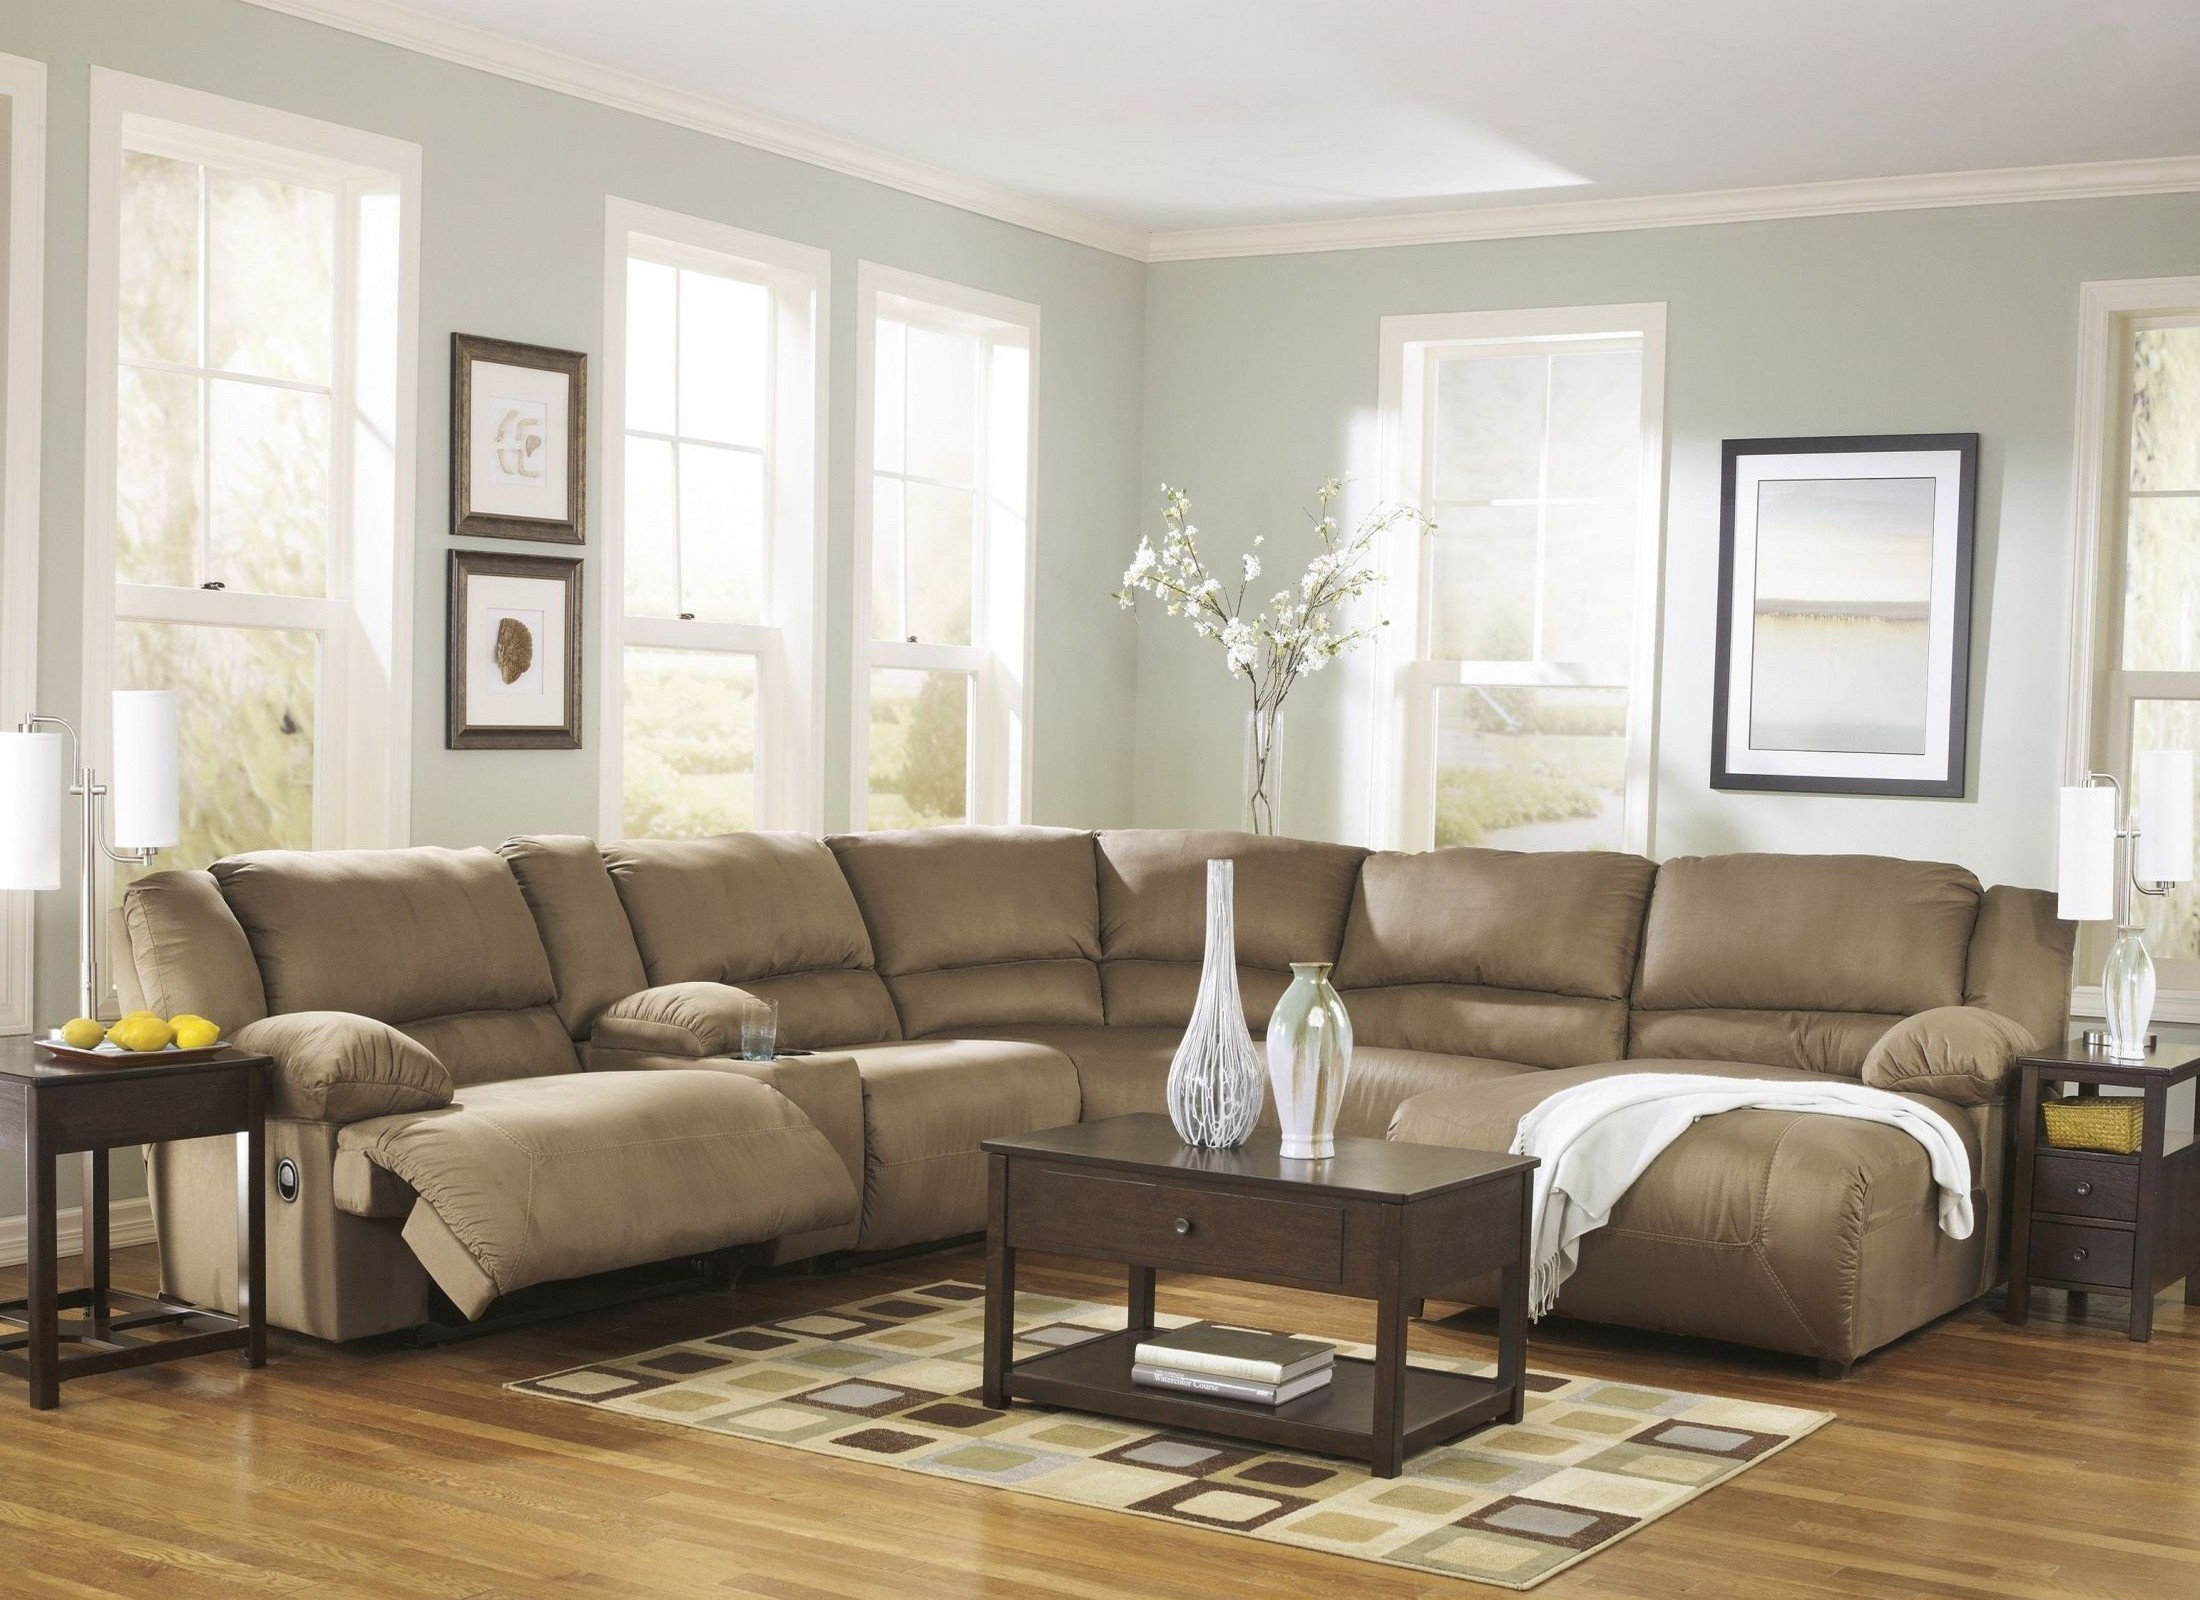 Hogan Mocha Left Chaise Reclining Sectional from Ashley SEC